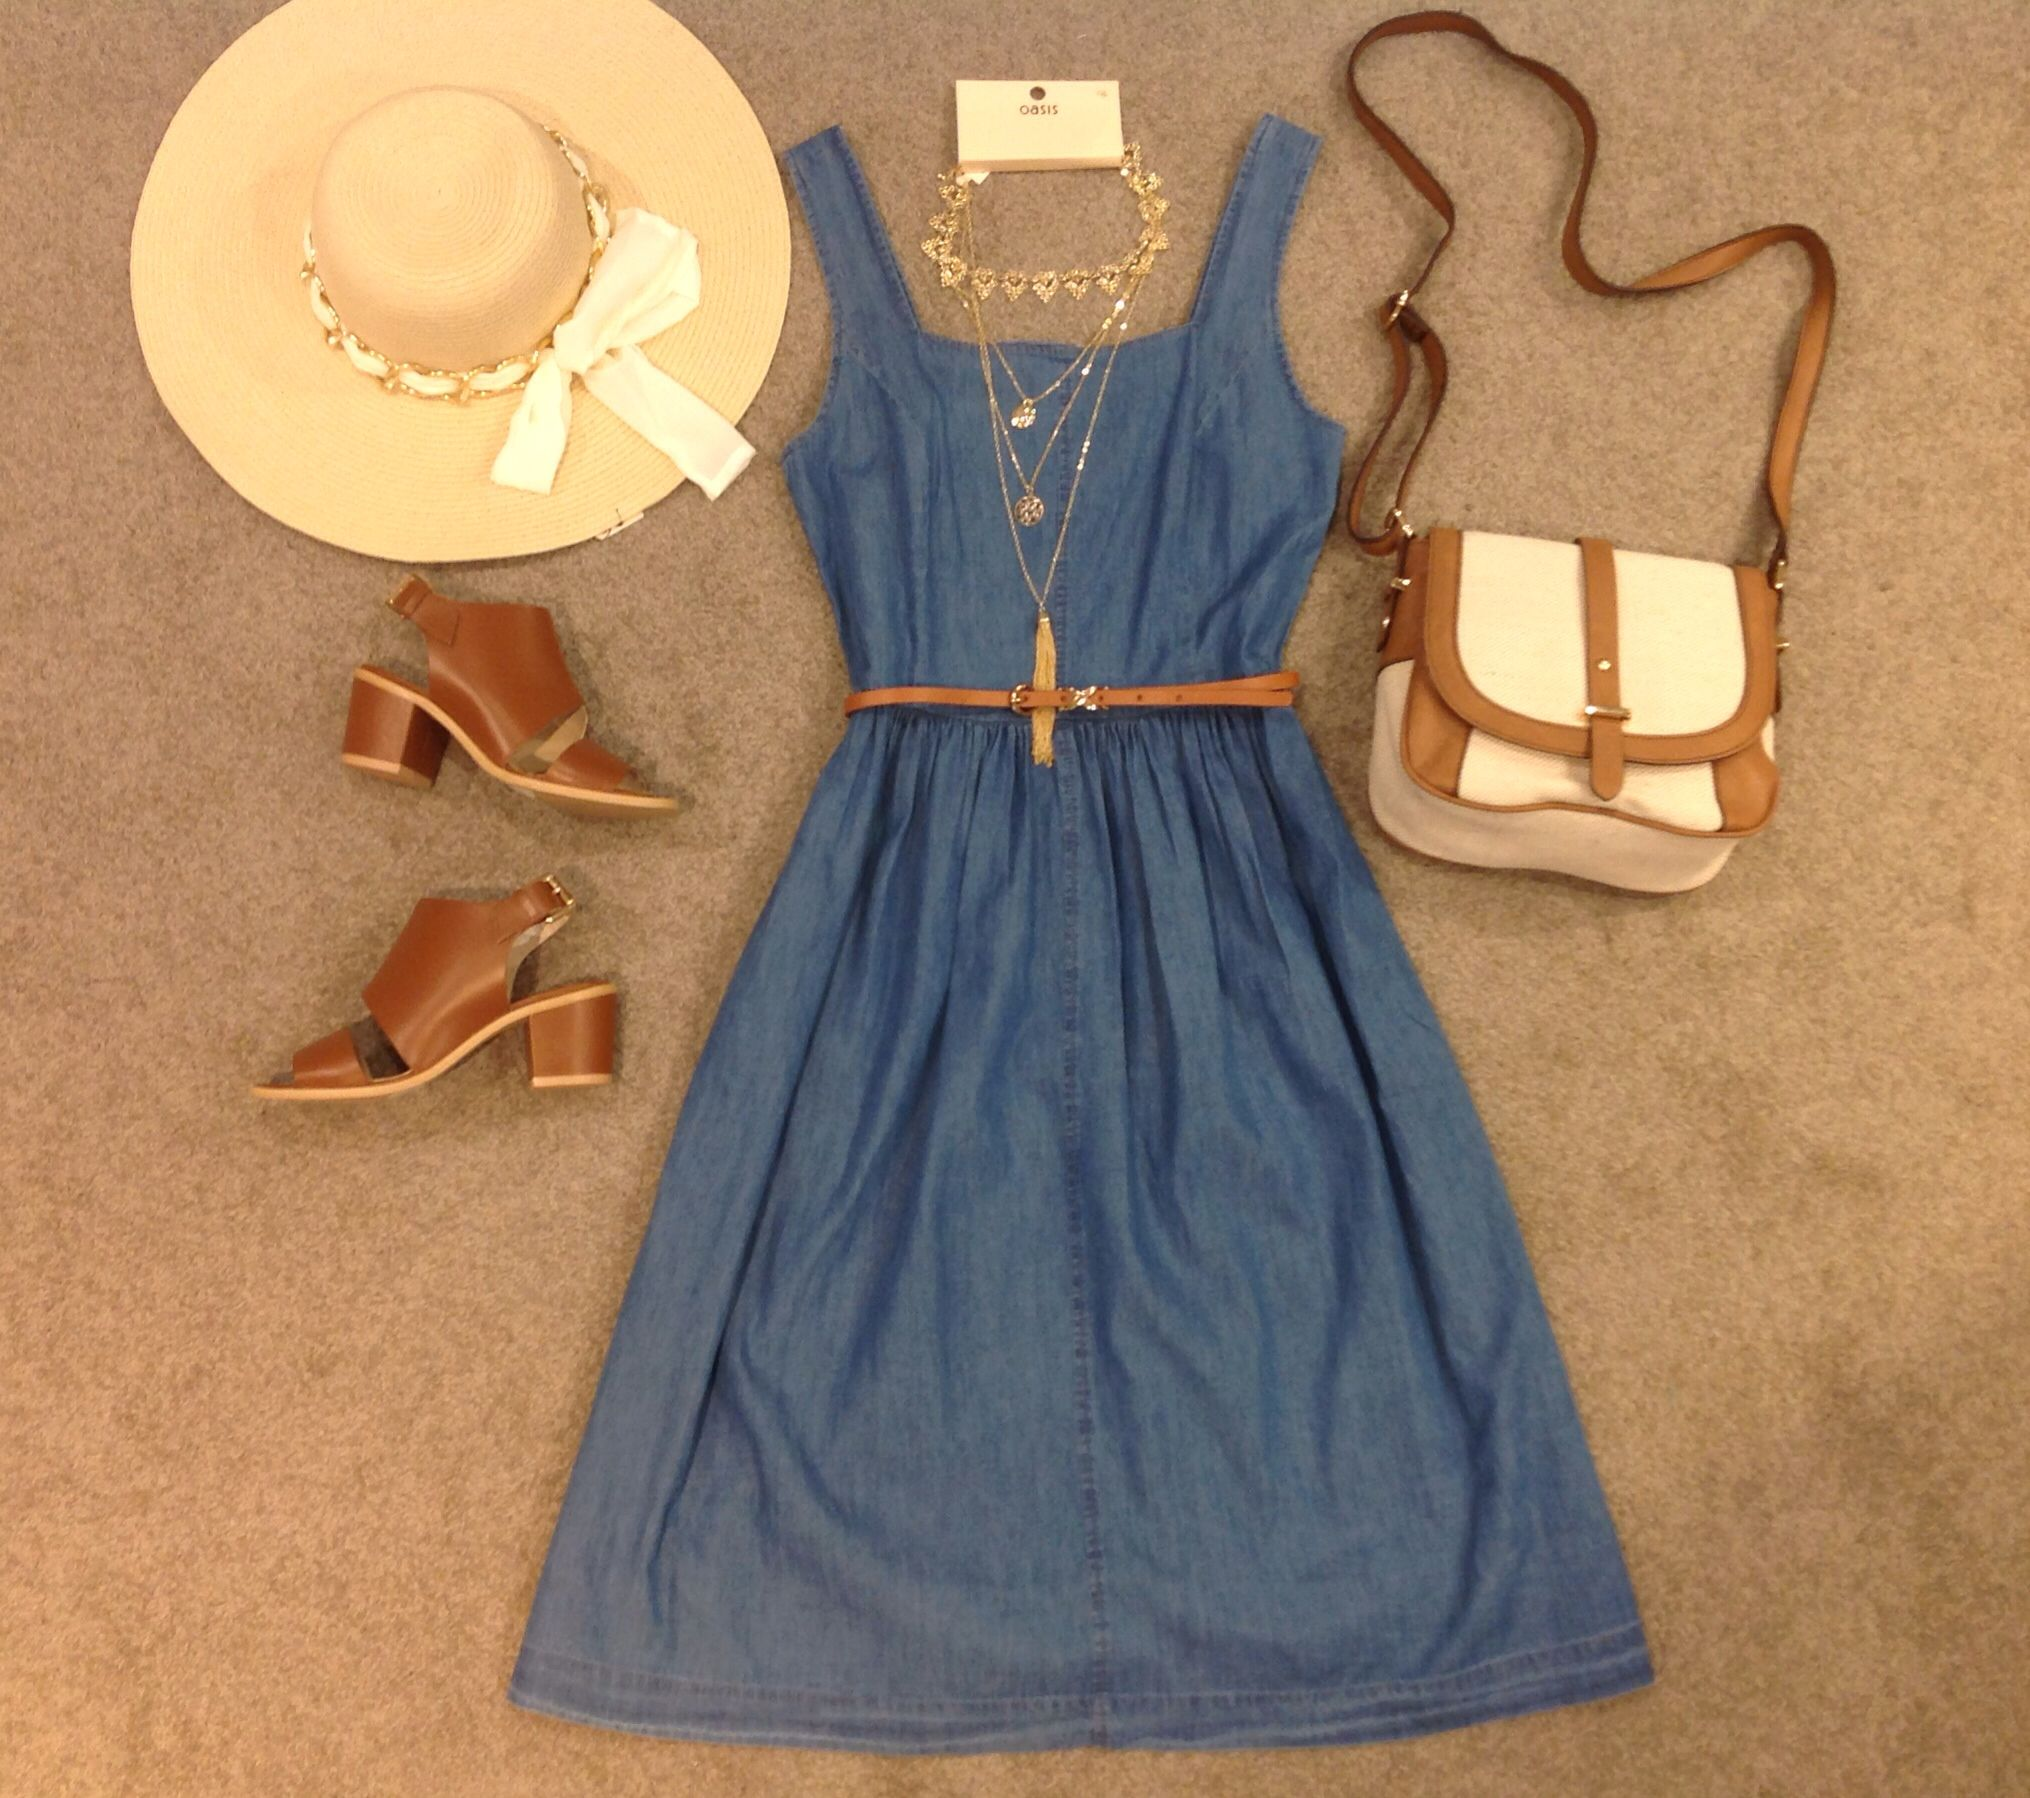 Perfect Wednesday outfit our Jasmine denim dress with Ibiza sandals #mypersonalstylist